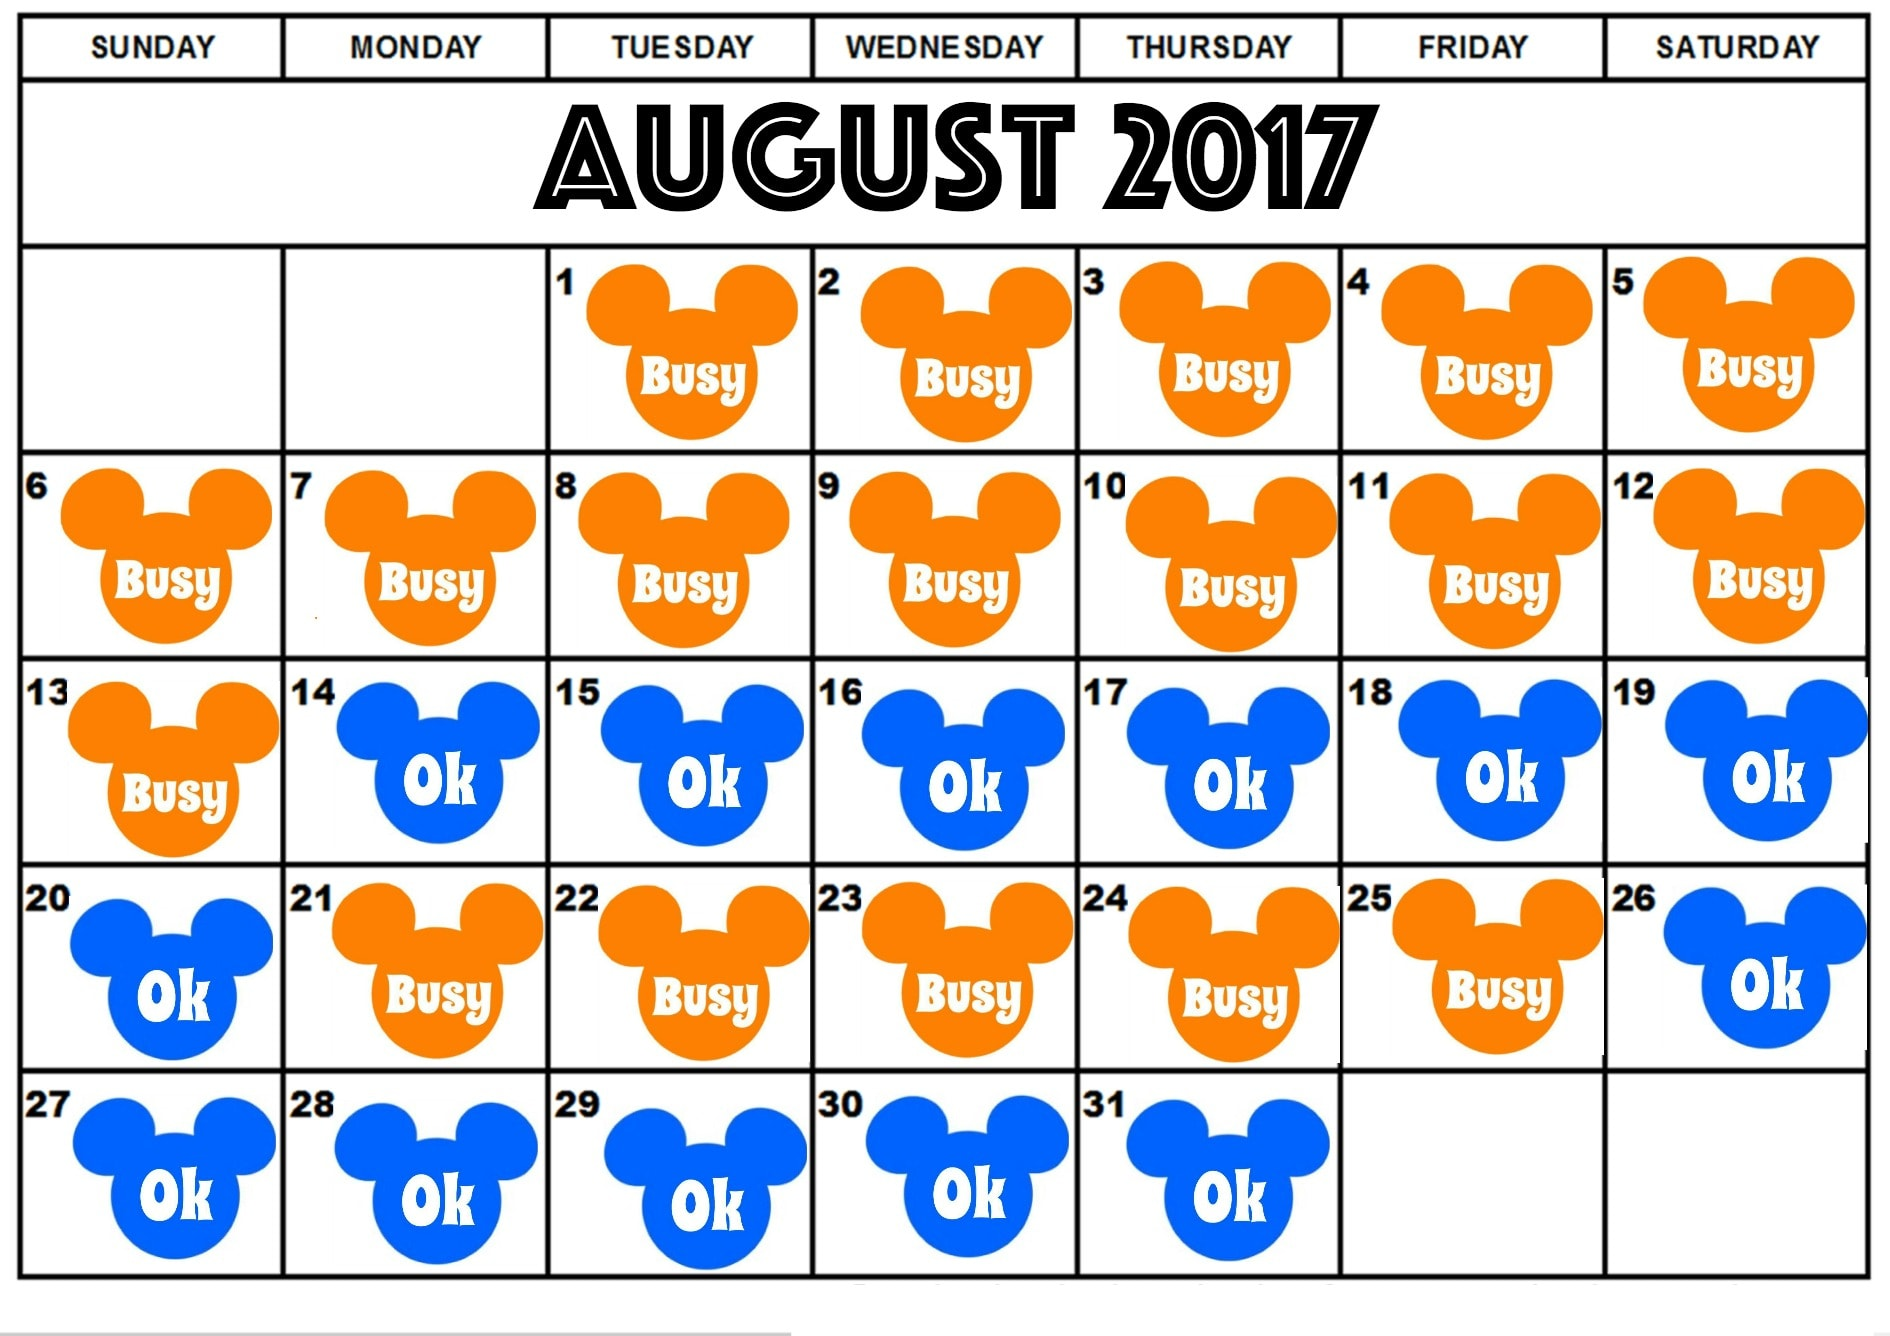 Disneyland Crowd Calendar for August 2017 plus tips to have a great summer at the Disneyland Resort!